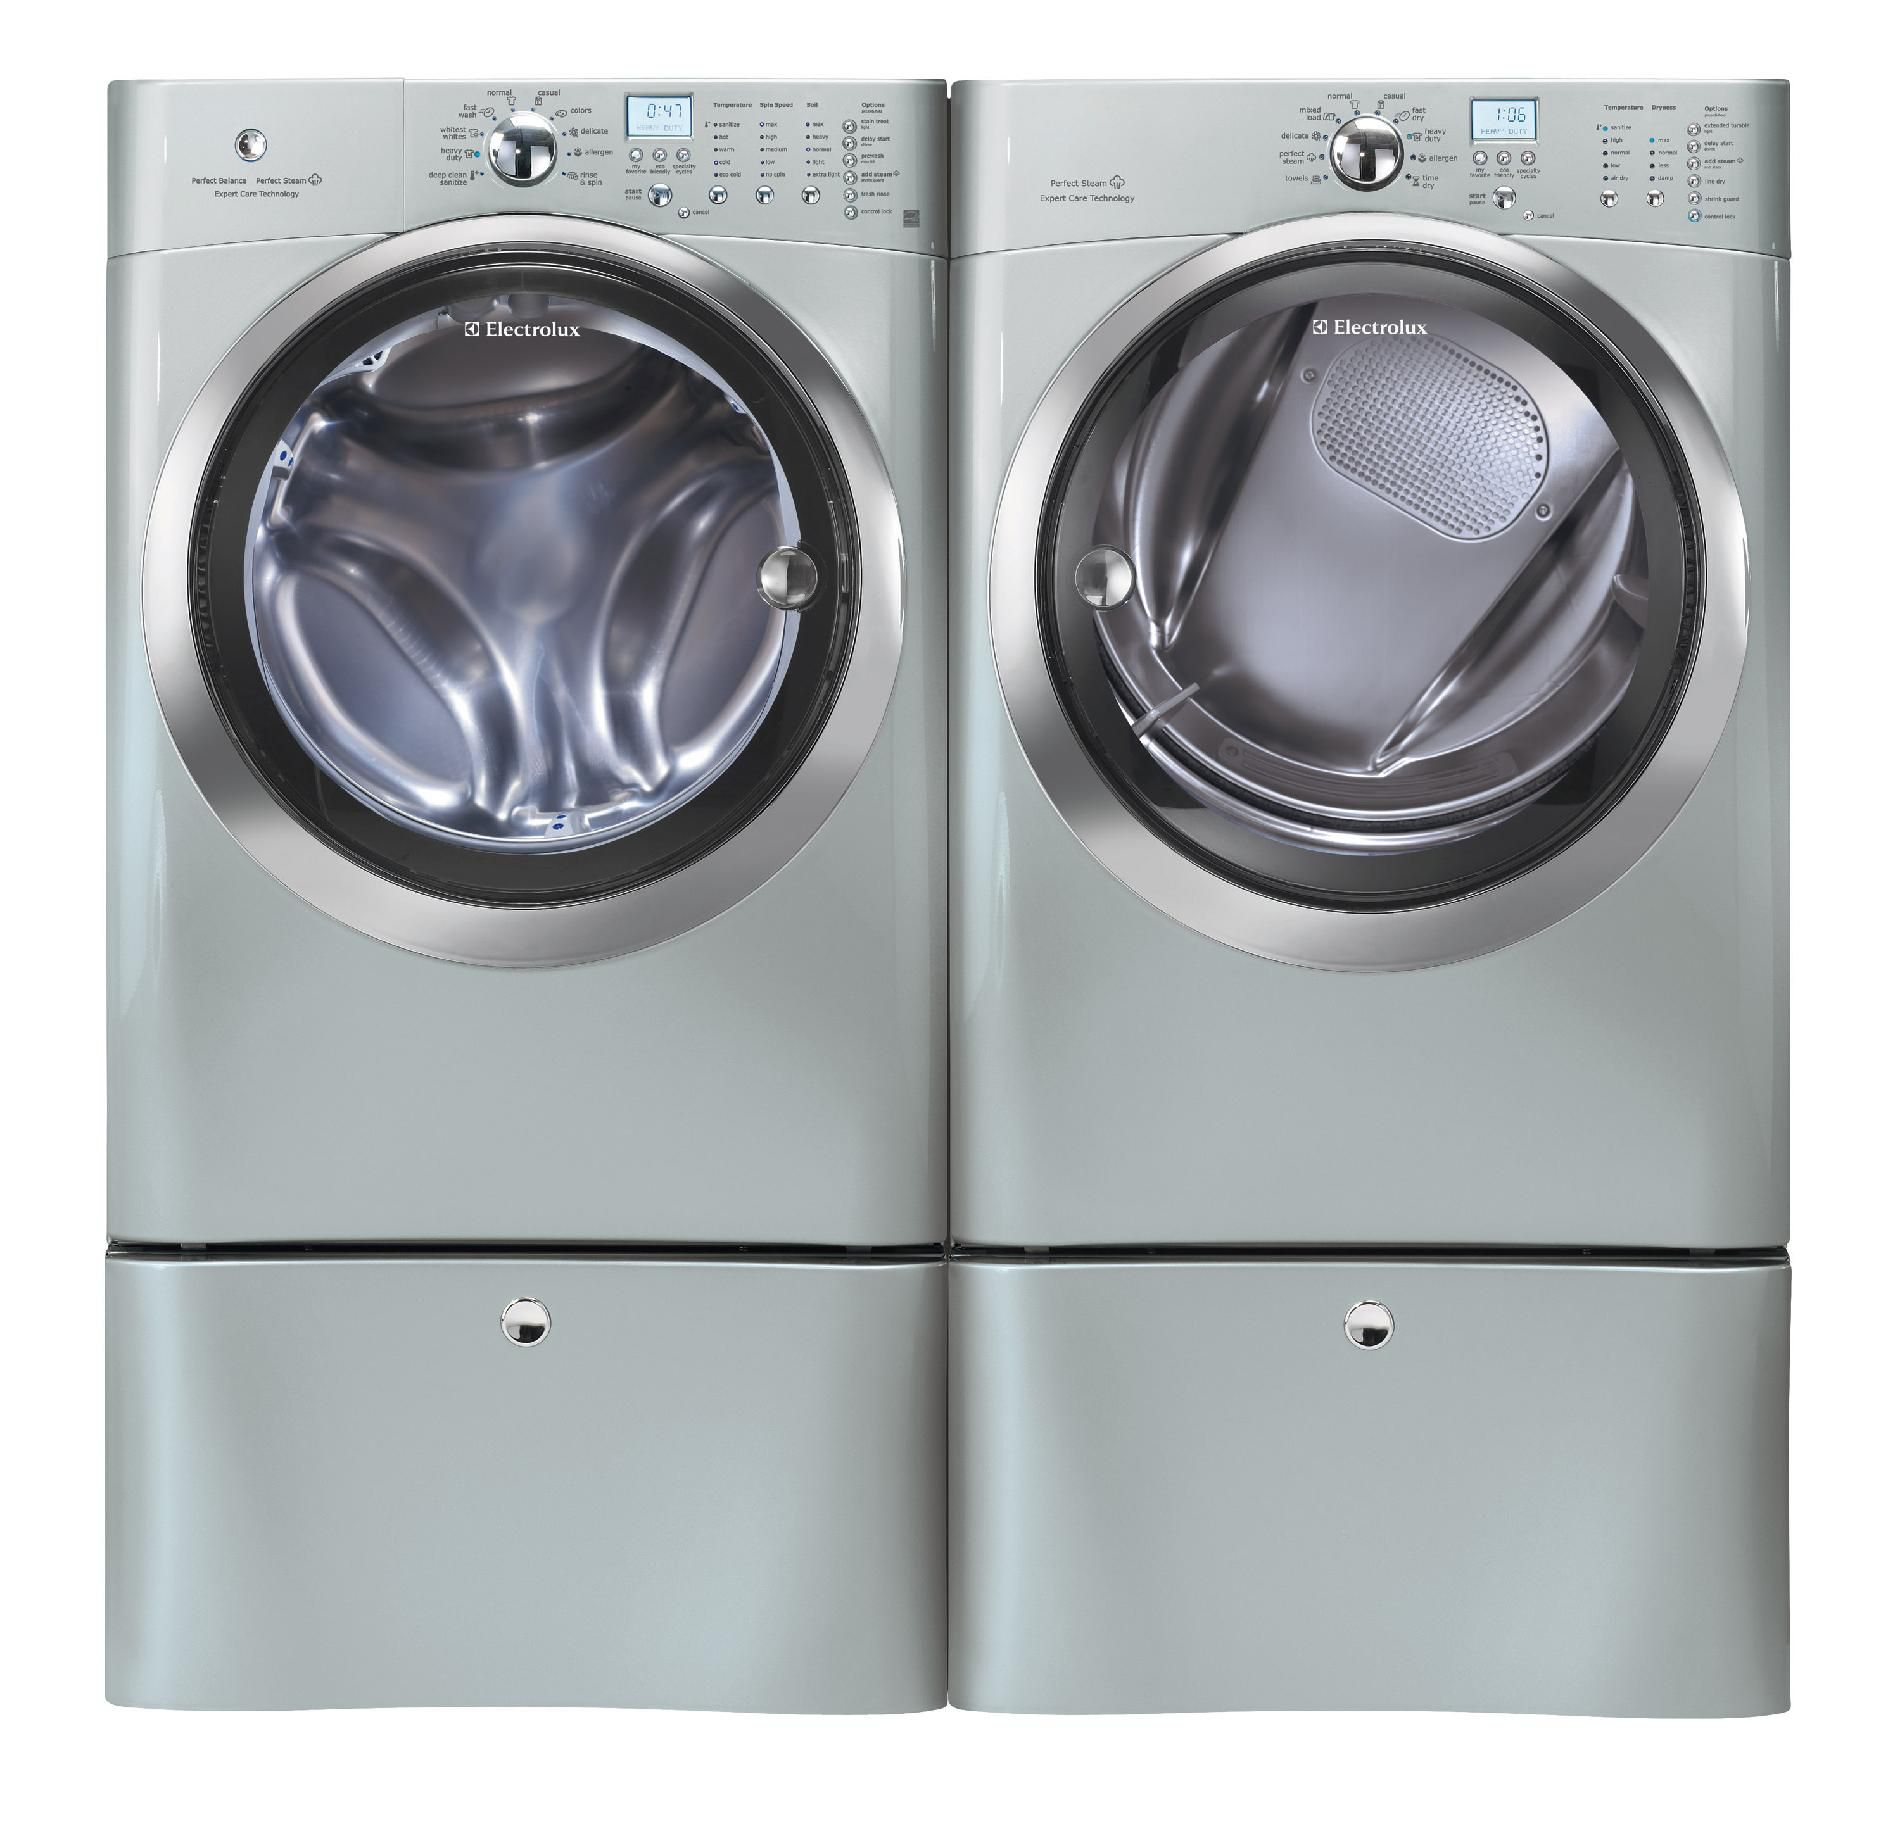 Electrolux 4.3 cu. ft. Front-Load Washer w/ Perfect Steam™ - Silver Sands